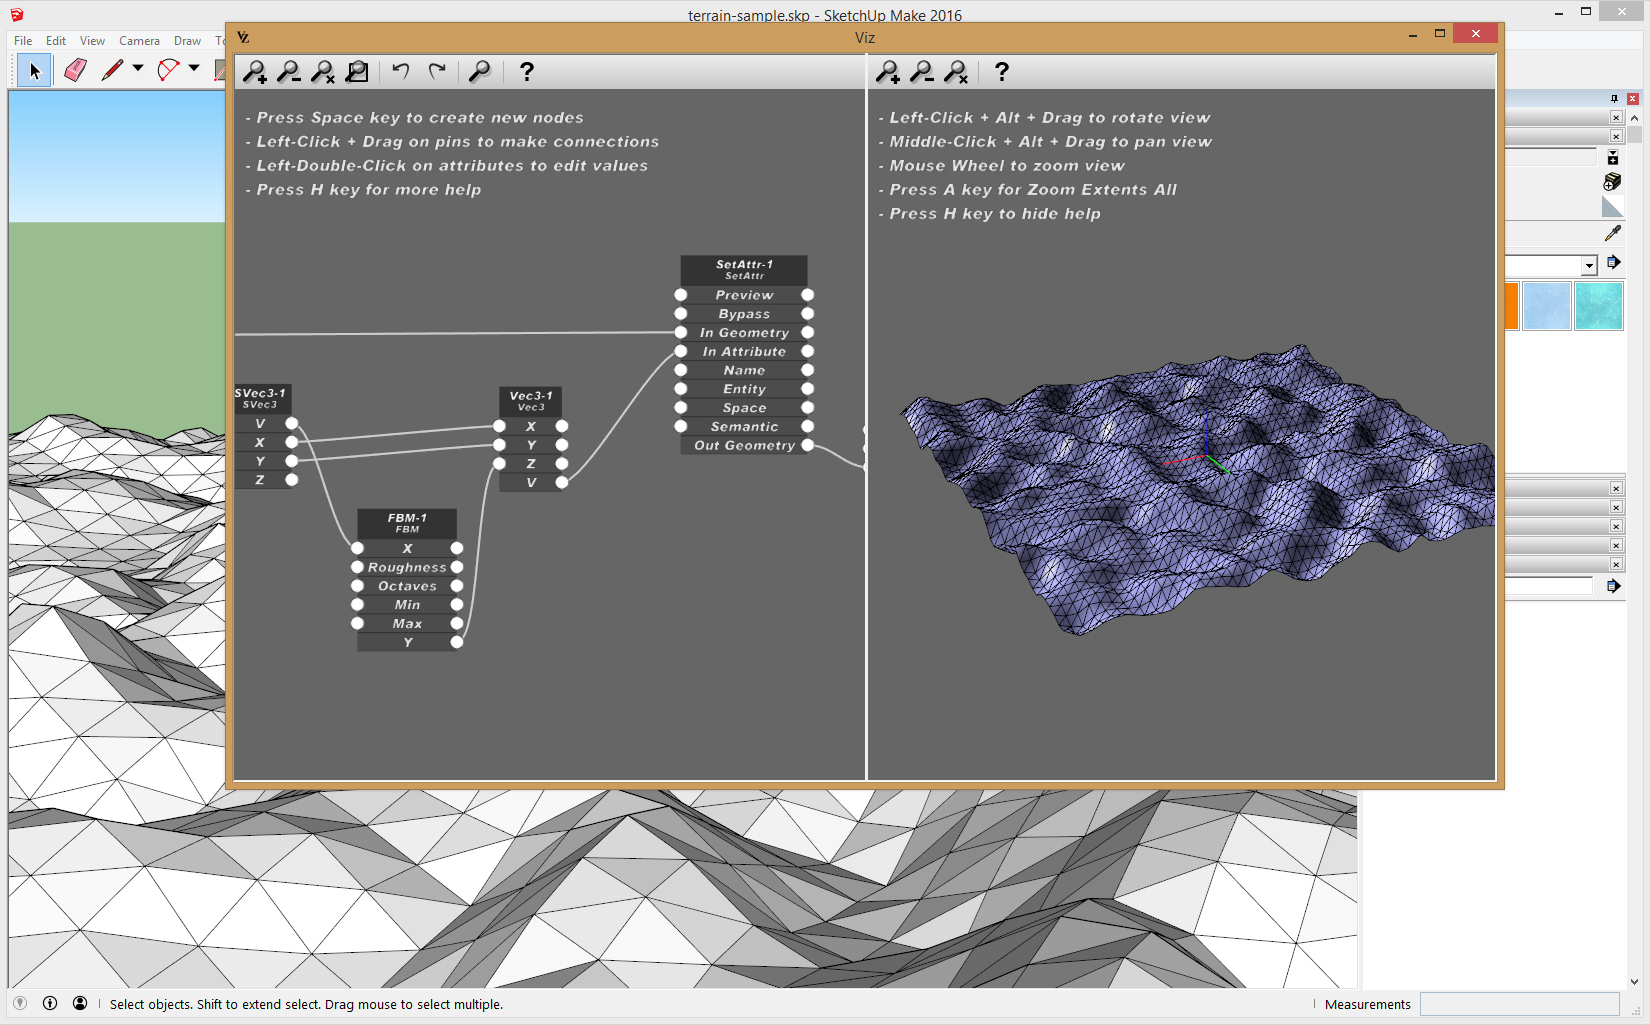 download wavefront customized visual correction